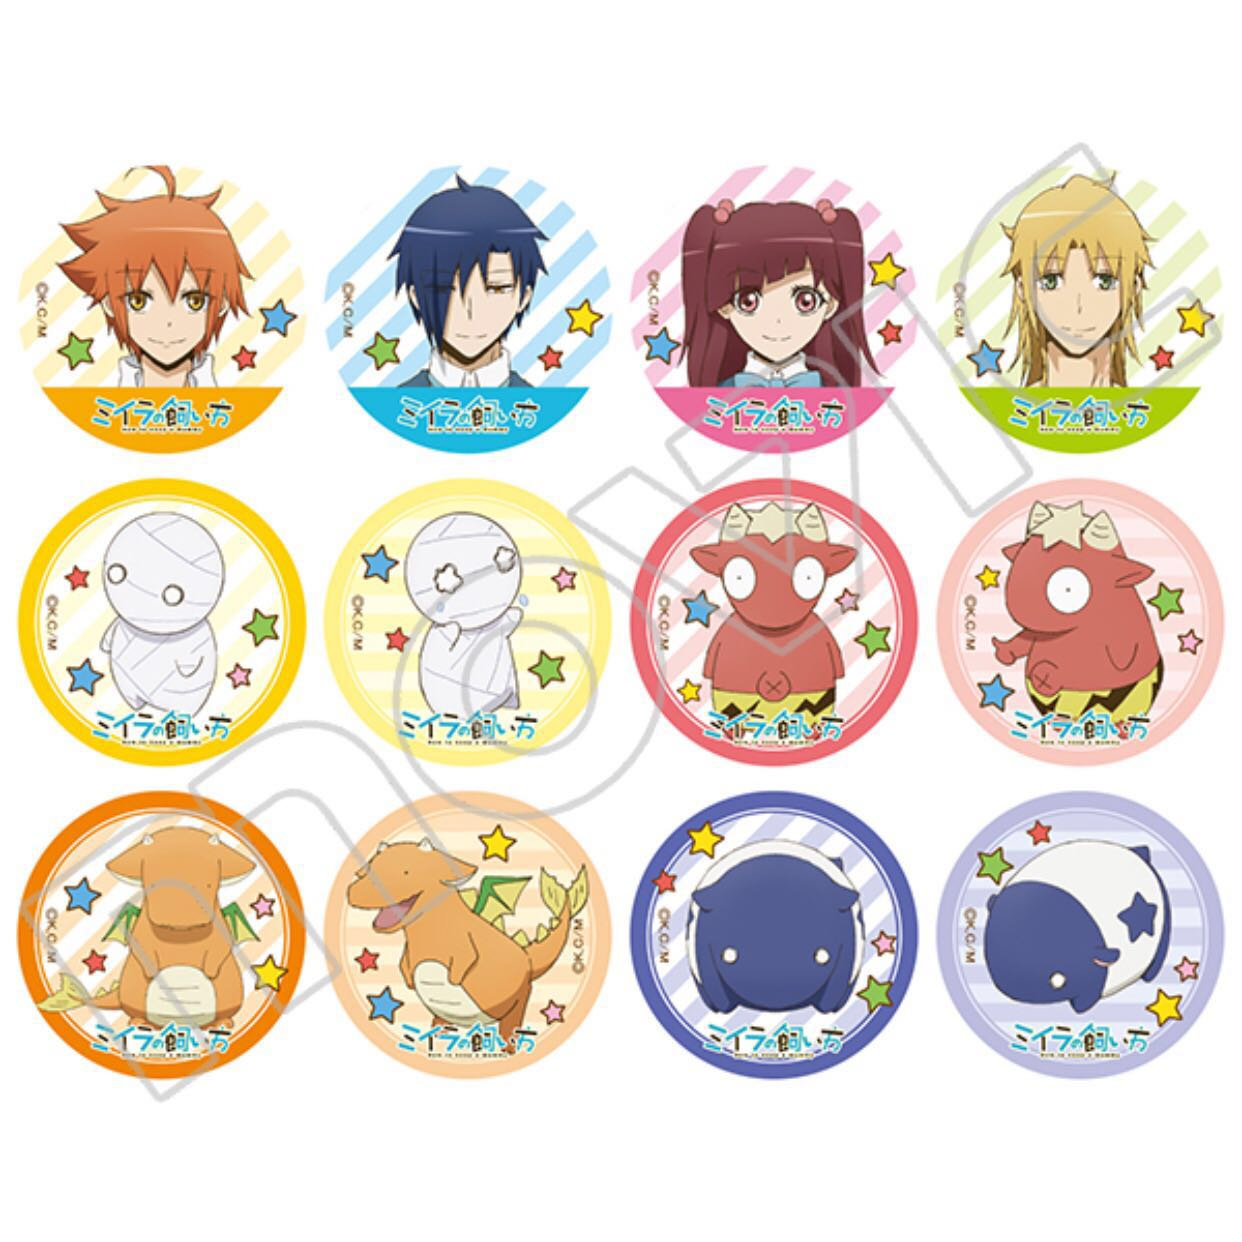 Po How To Keep A Mummy Official Badges Entertainment J Pop On Carousell 68,156 likes · 24 talking about this. po how to keep a mummy official badges